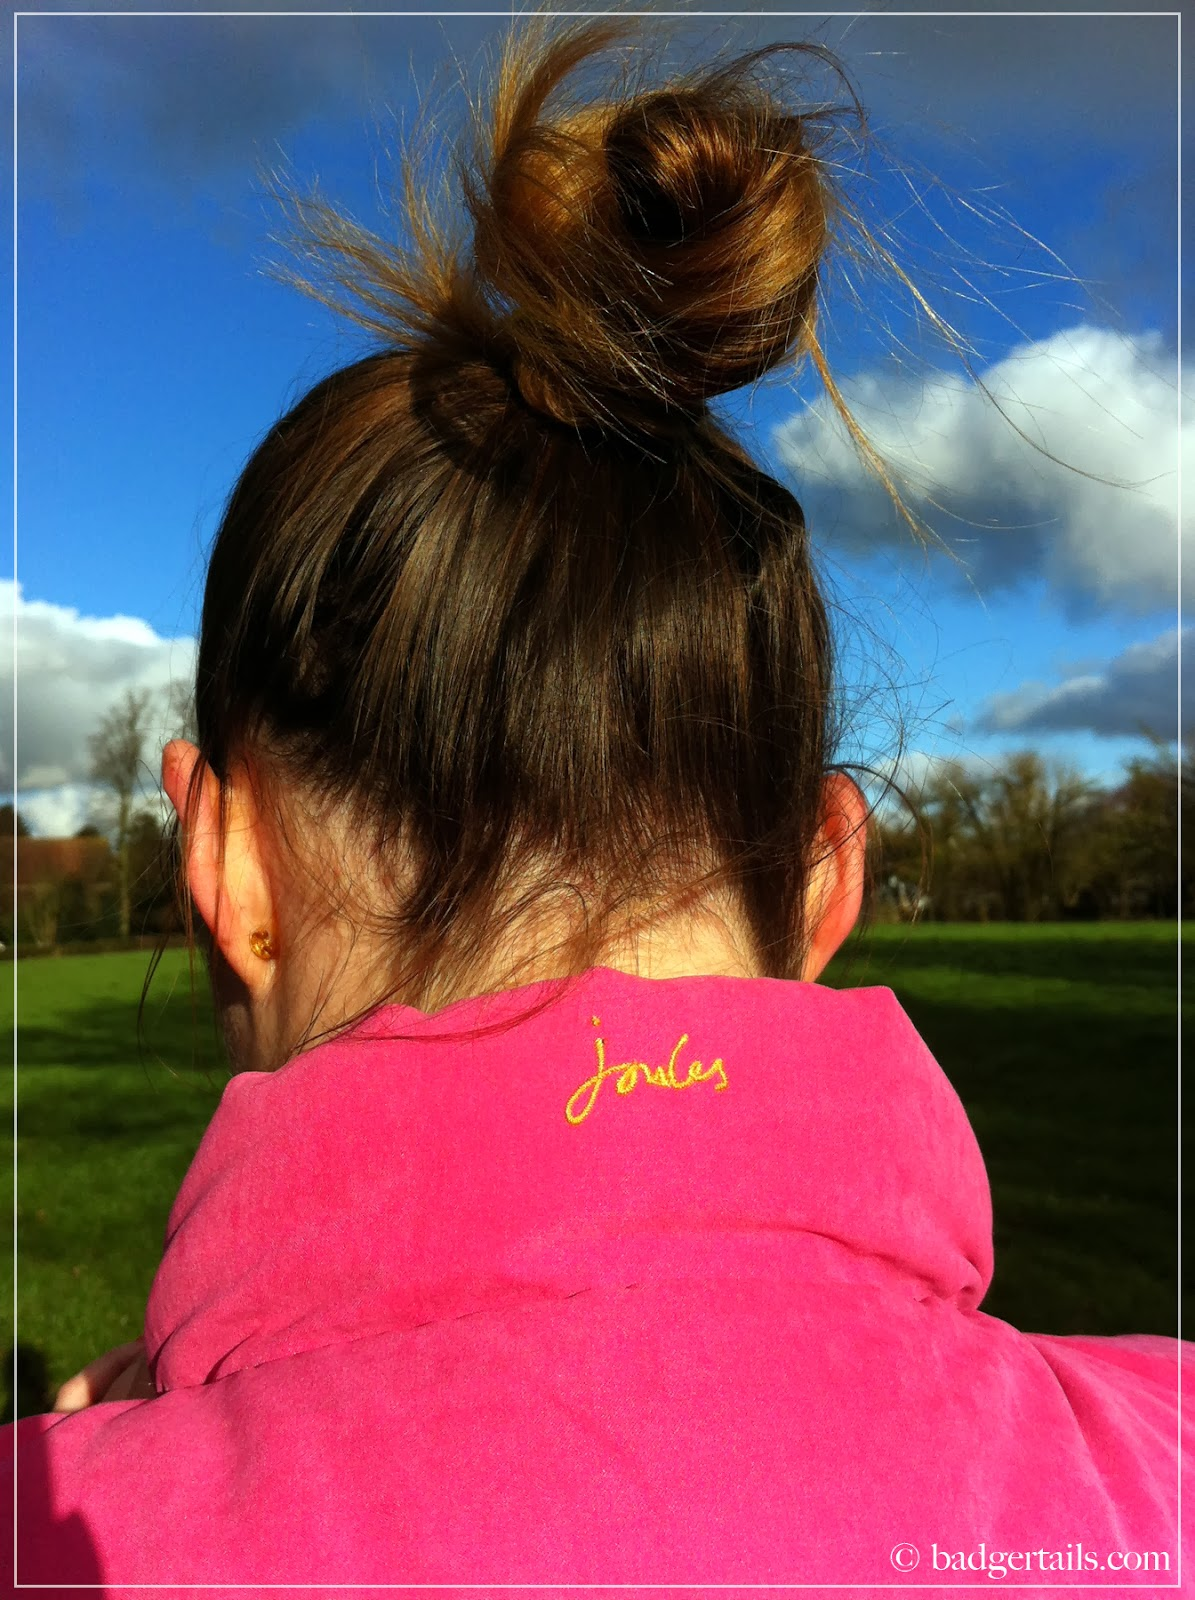 brunette lady wearing pink joules gilet in english countryside field